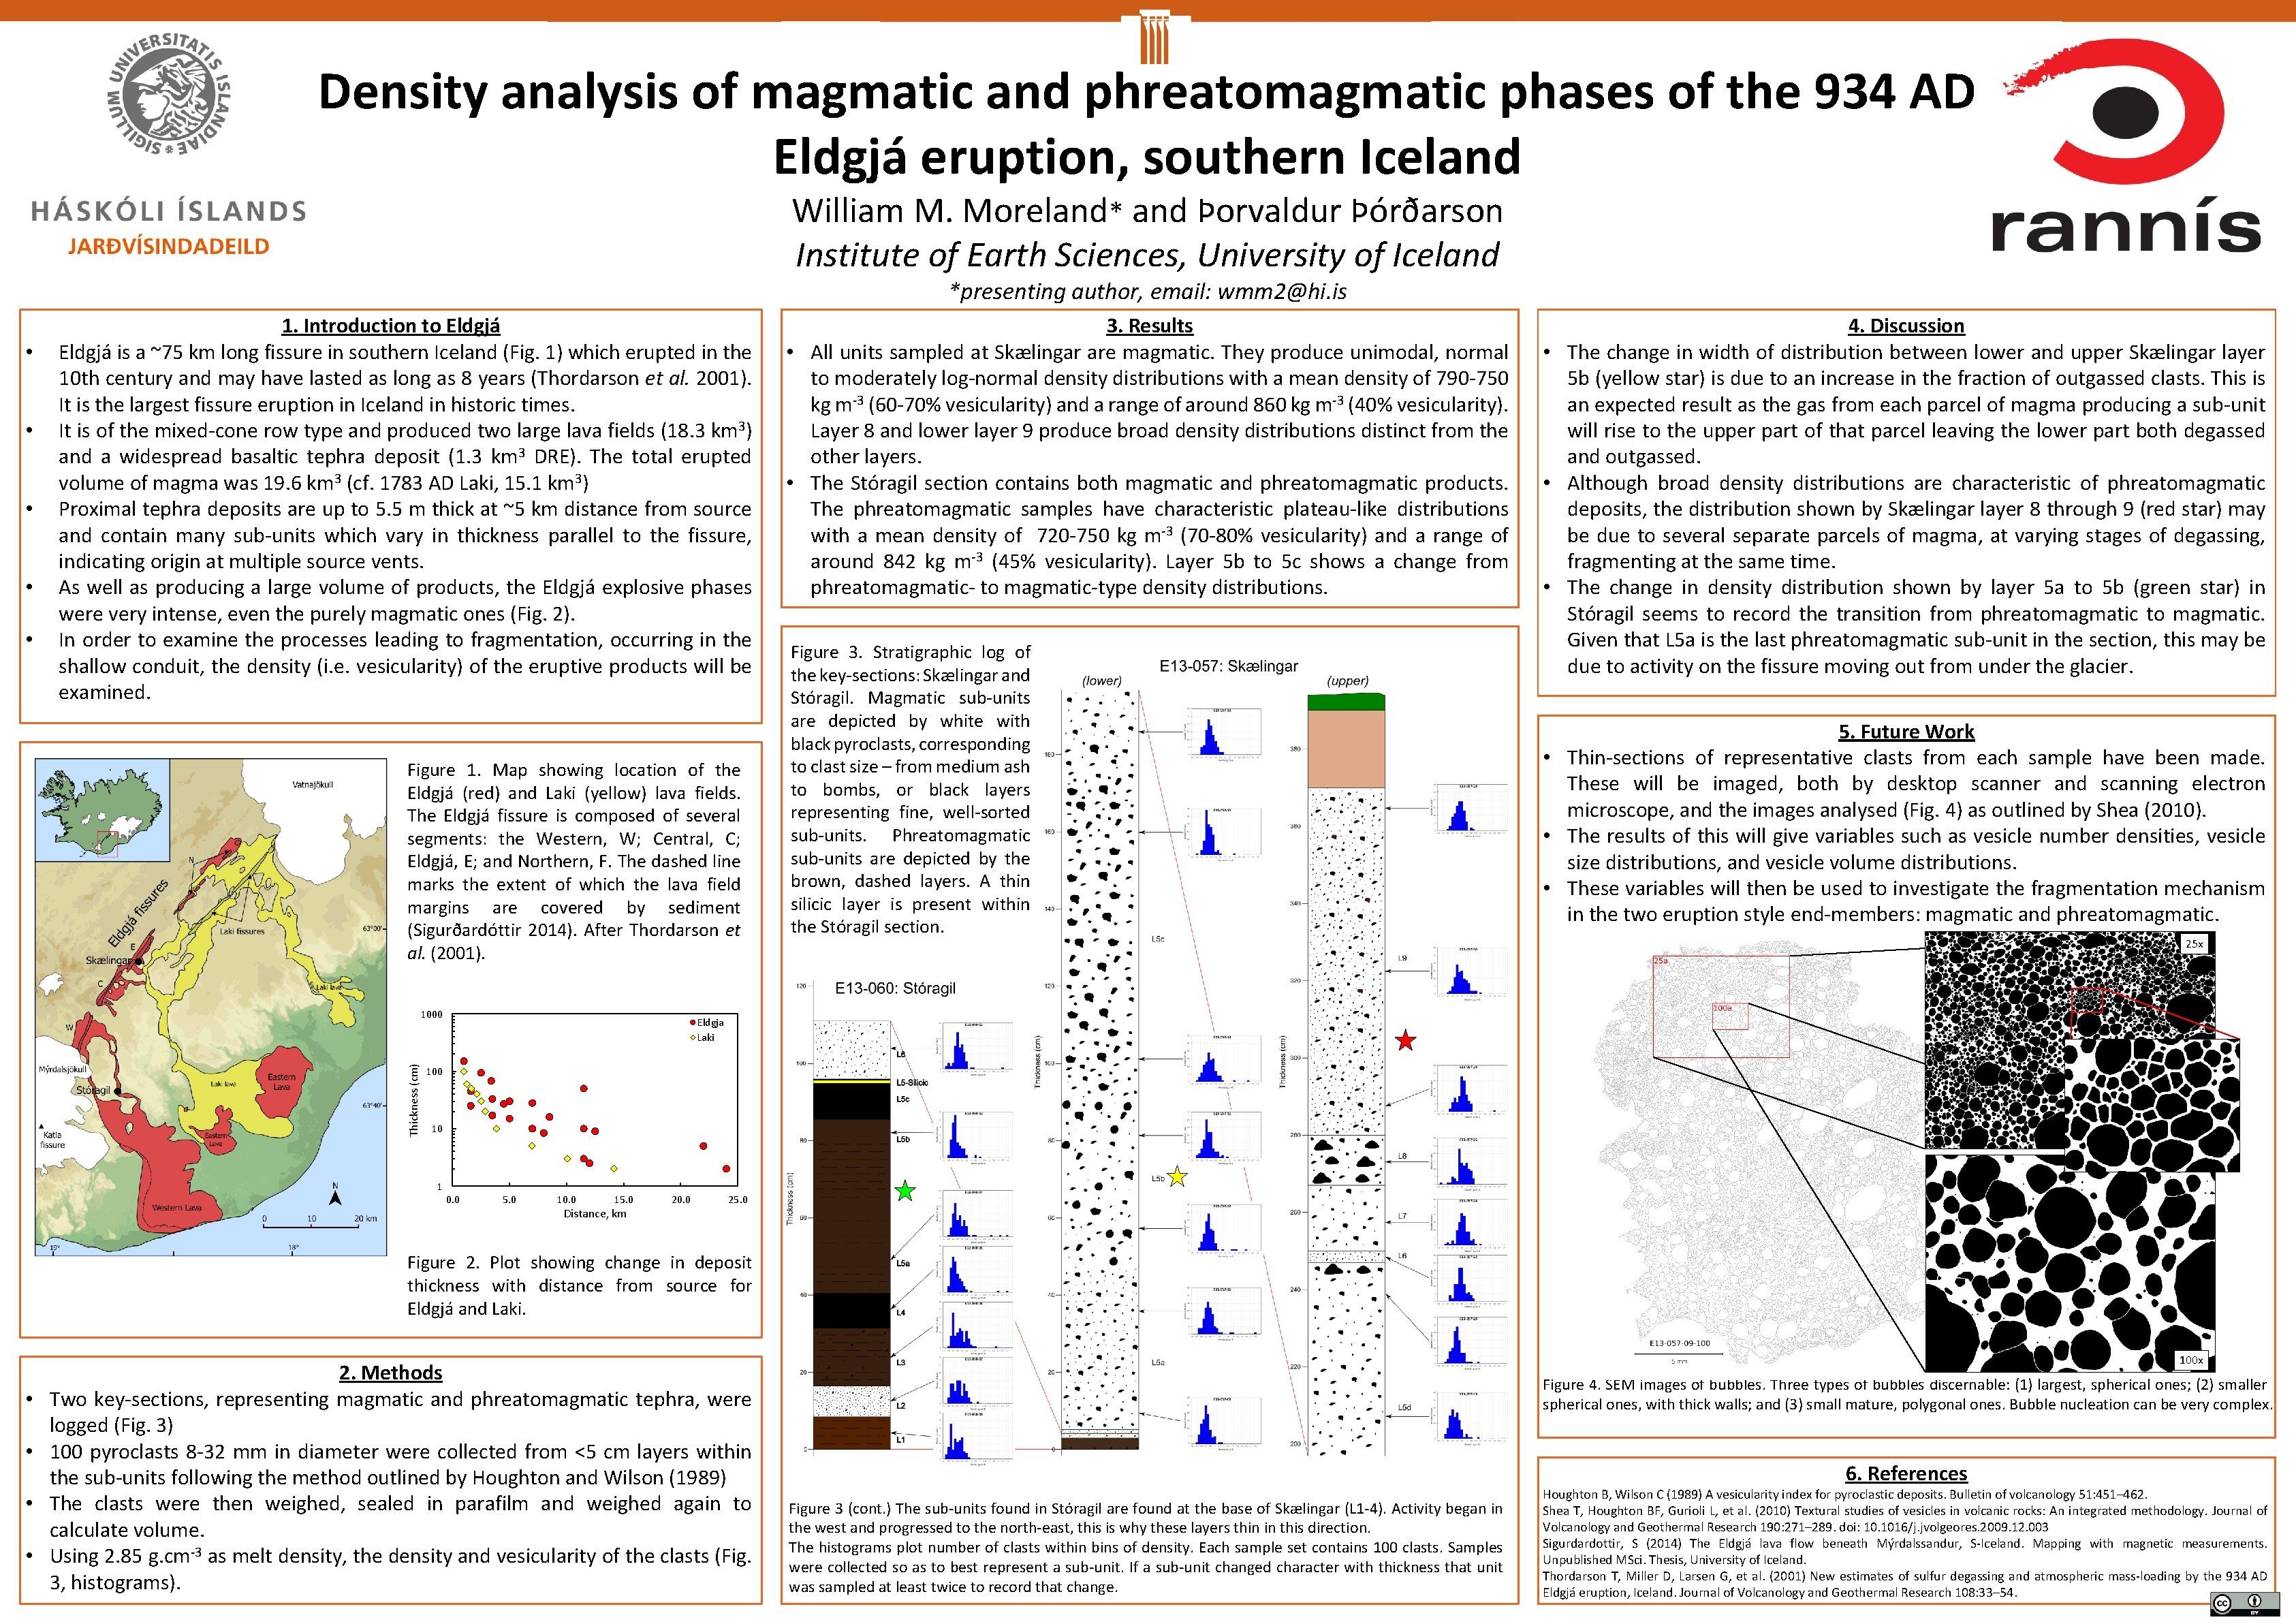 Density analysis of magmatic and phreatomagmatic phases of the 934 AD Eldgjá eruption, southern